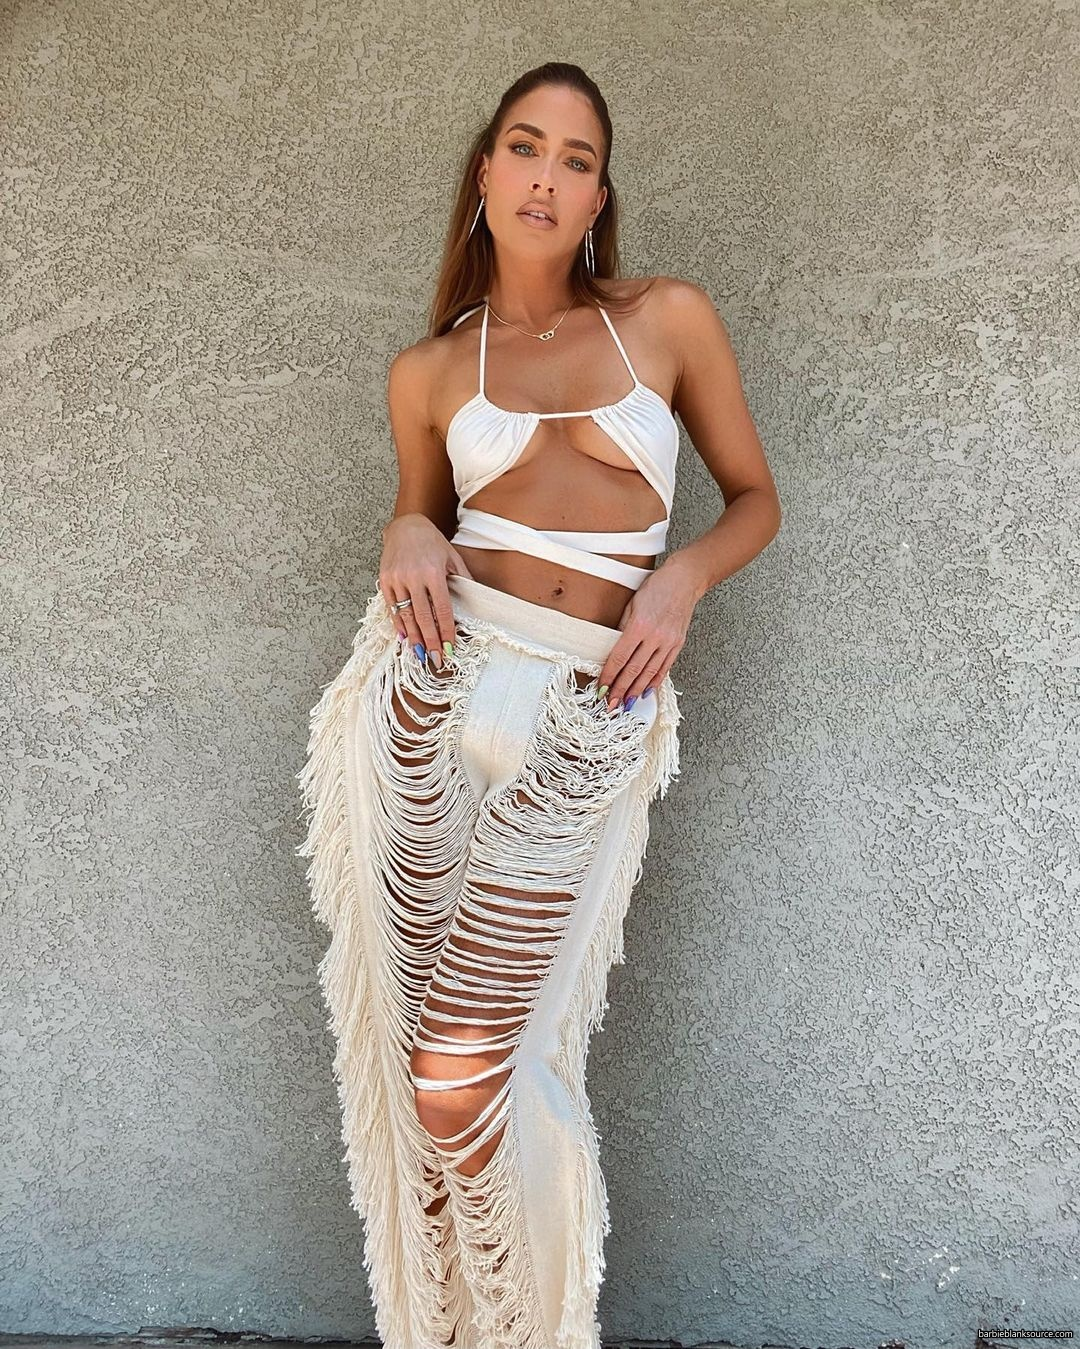 WWE Star Kelly Kelly Shows Off Personality In Revealing Dress And Pants 2